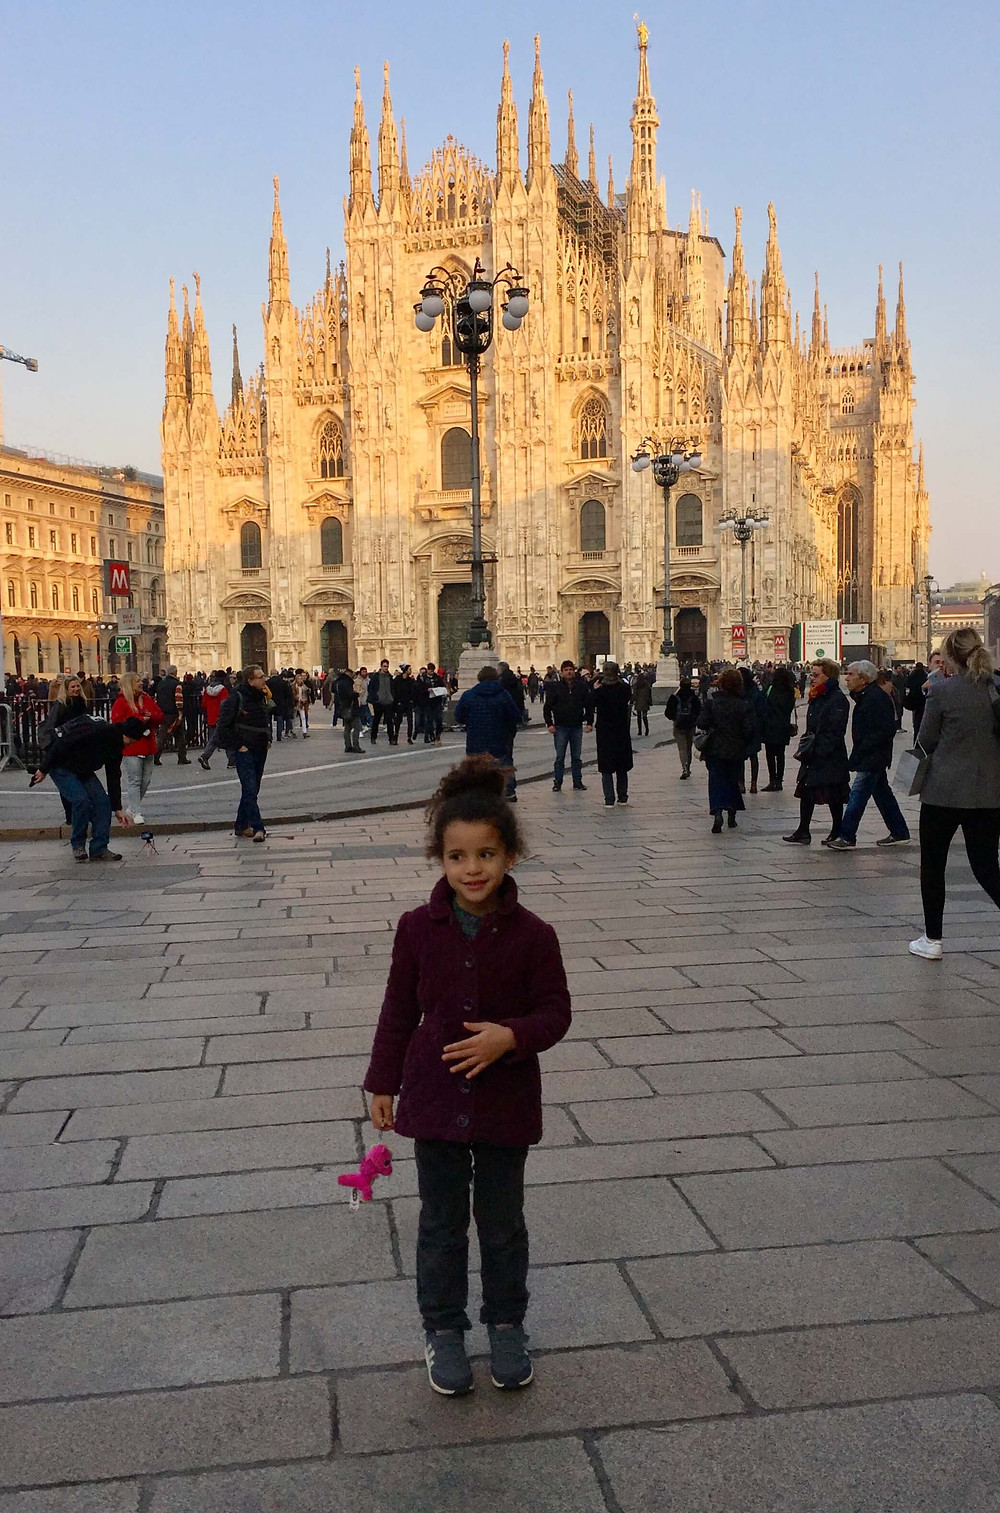 Loreva @ the milan Cathedral. You want to know more about Duomo di Milano, check out our instagram post about it :)